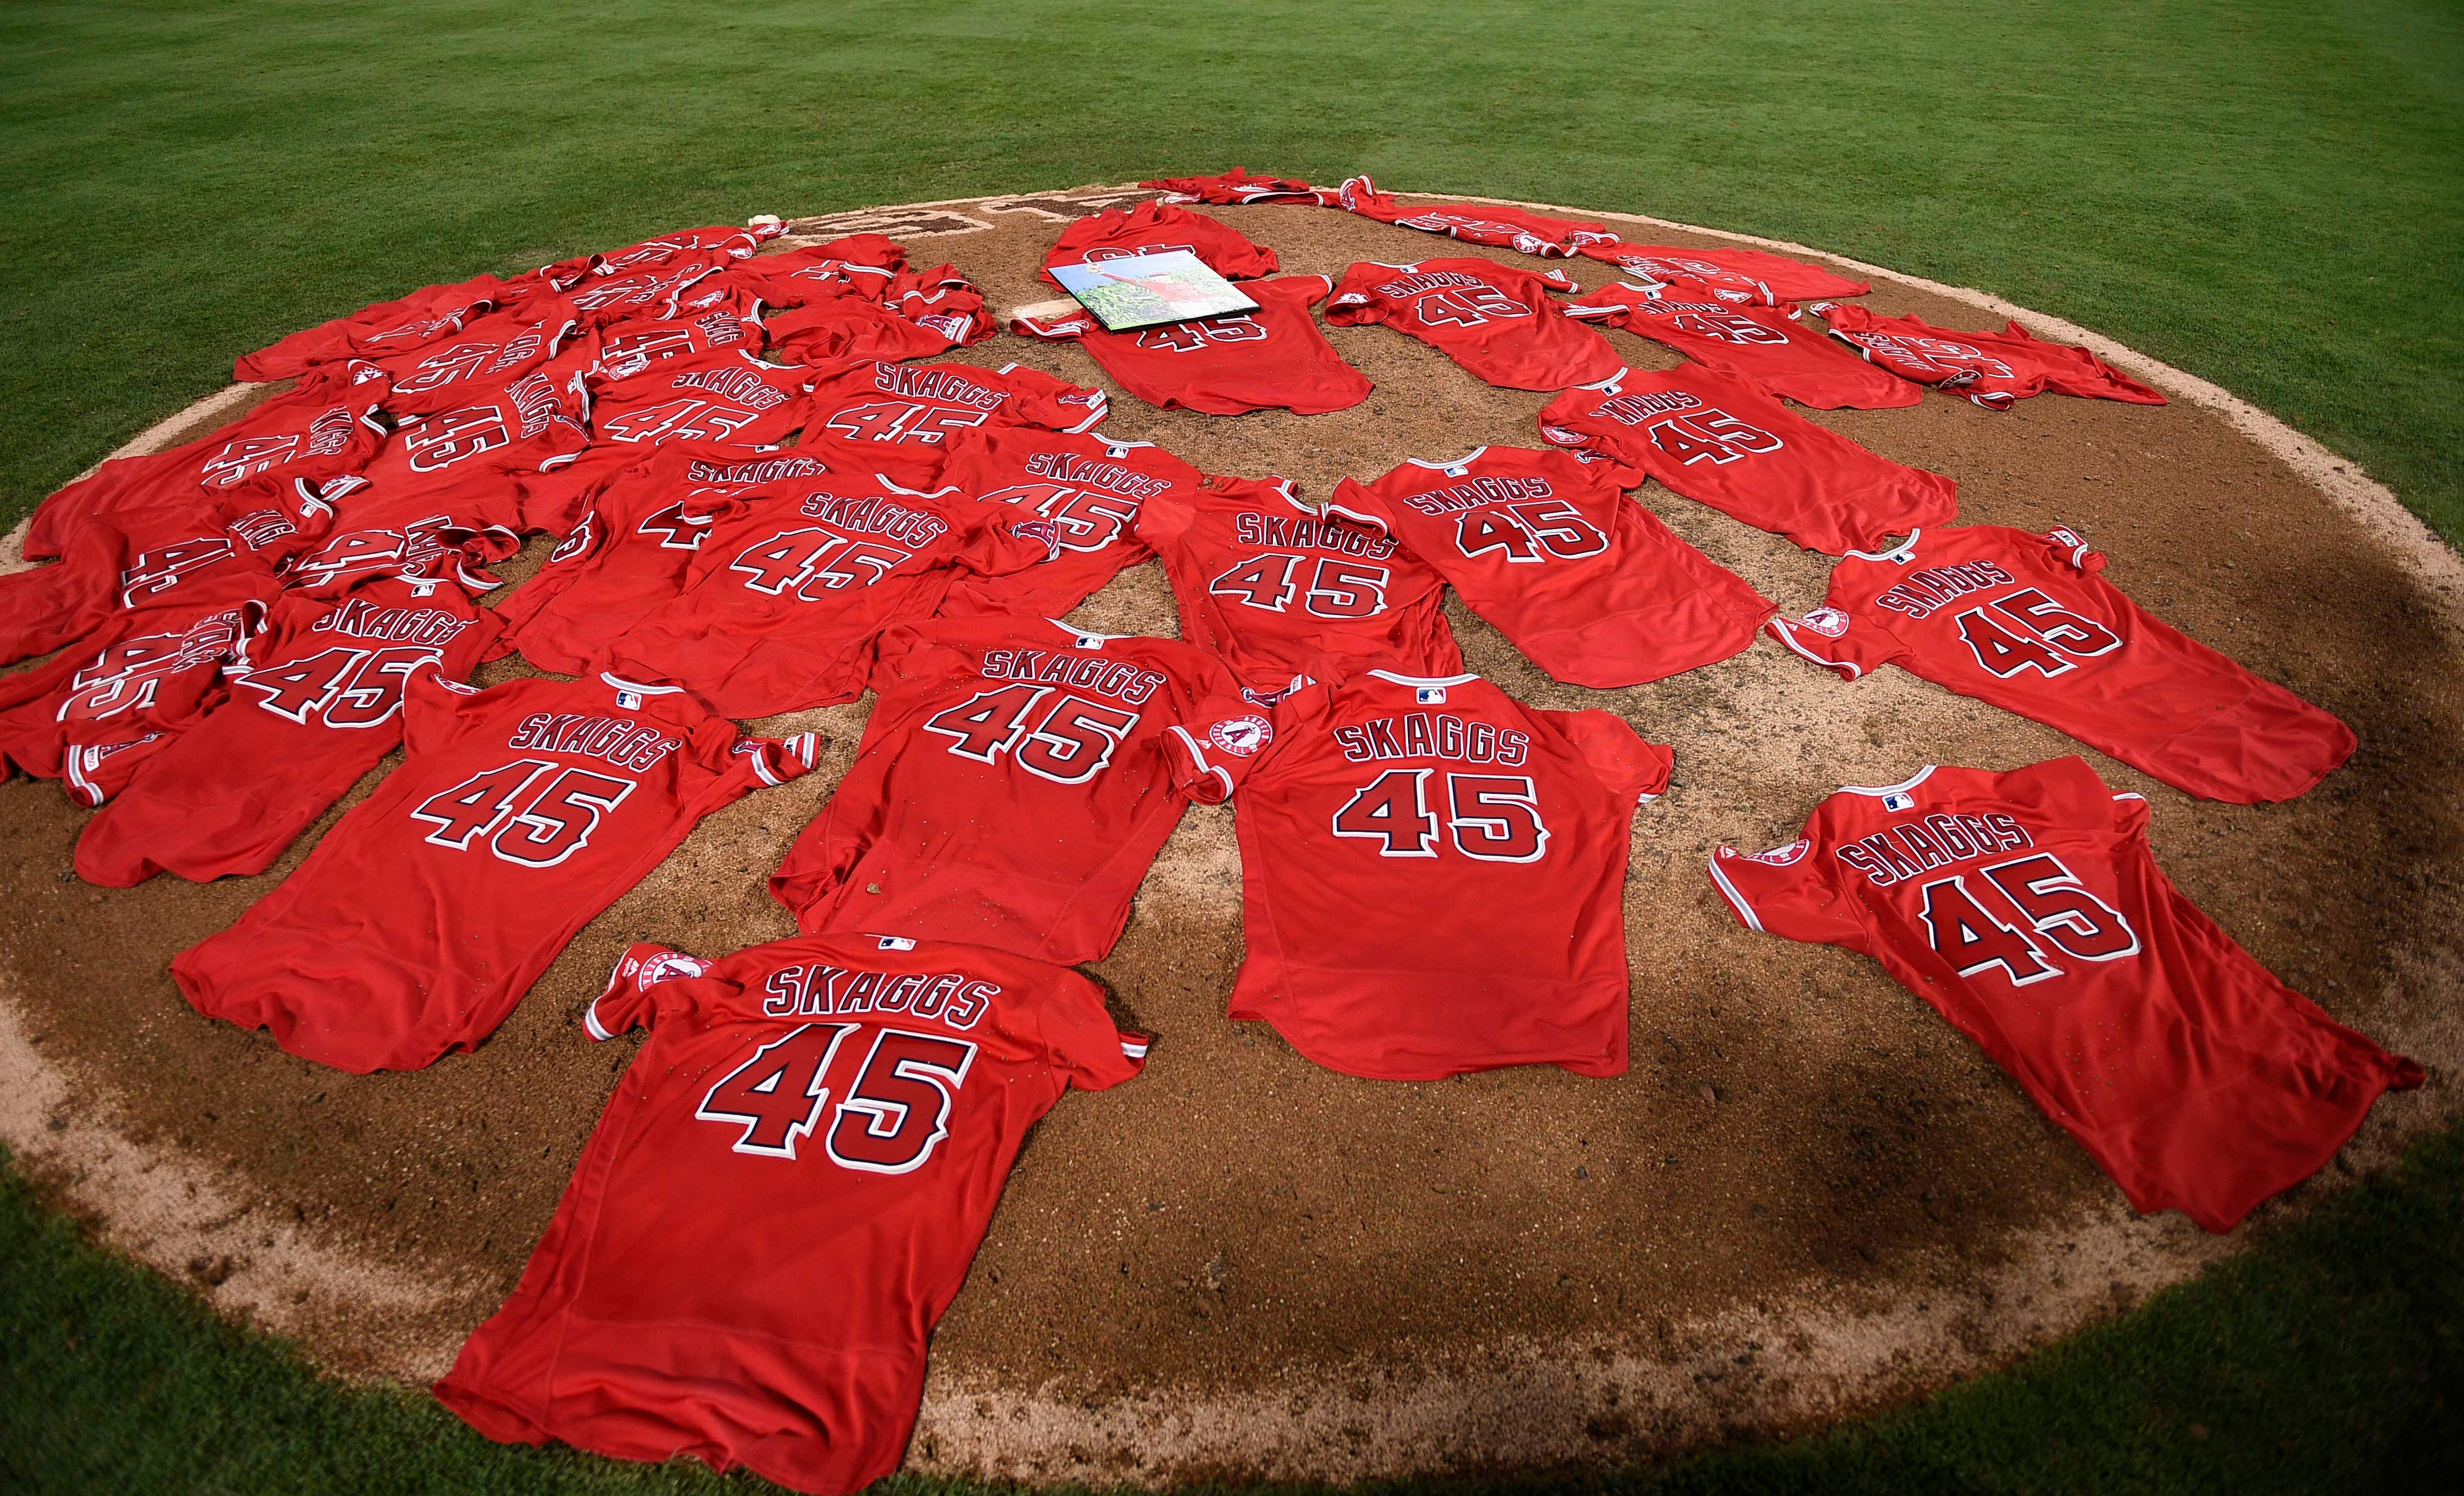 Former Angels employee Eric Kay charged with distributing fentanyl in connection with Tyler Skaggs' death